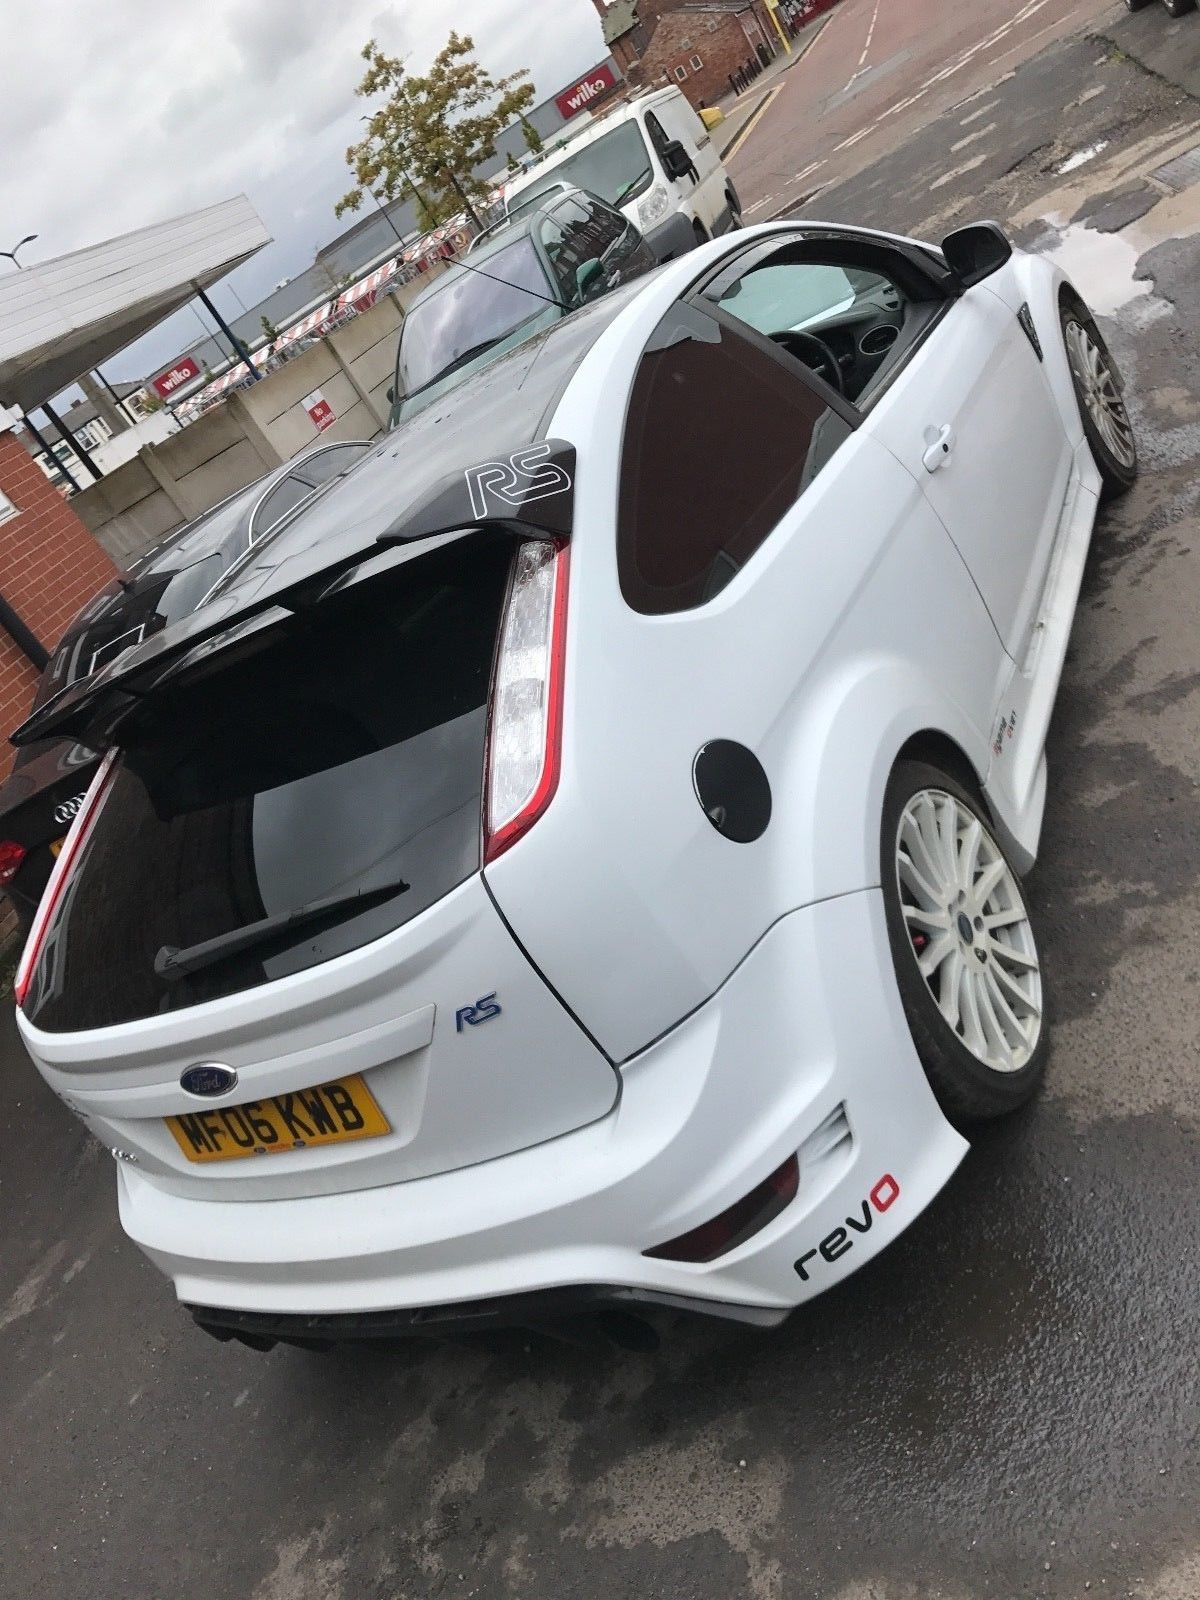 Check Out This Fast Ford Ford Focus Rs Replica Lookalike Modified